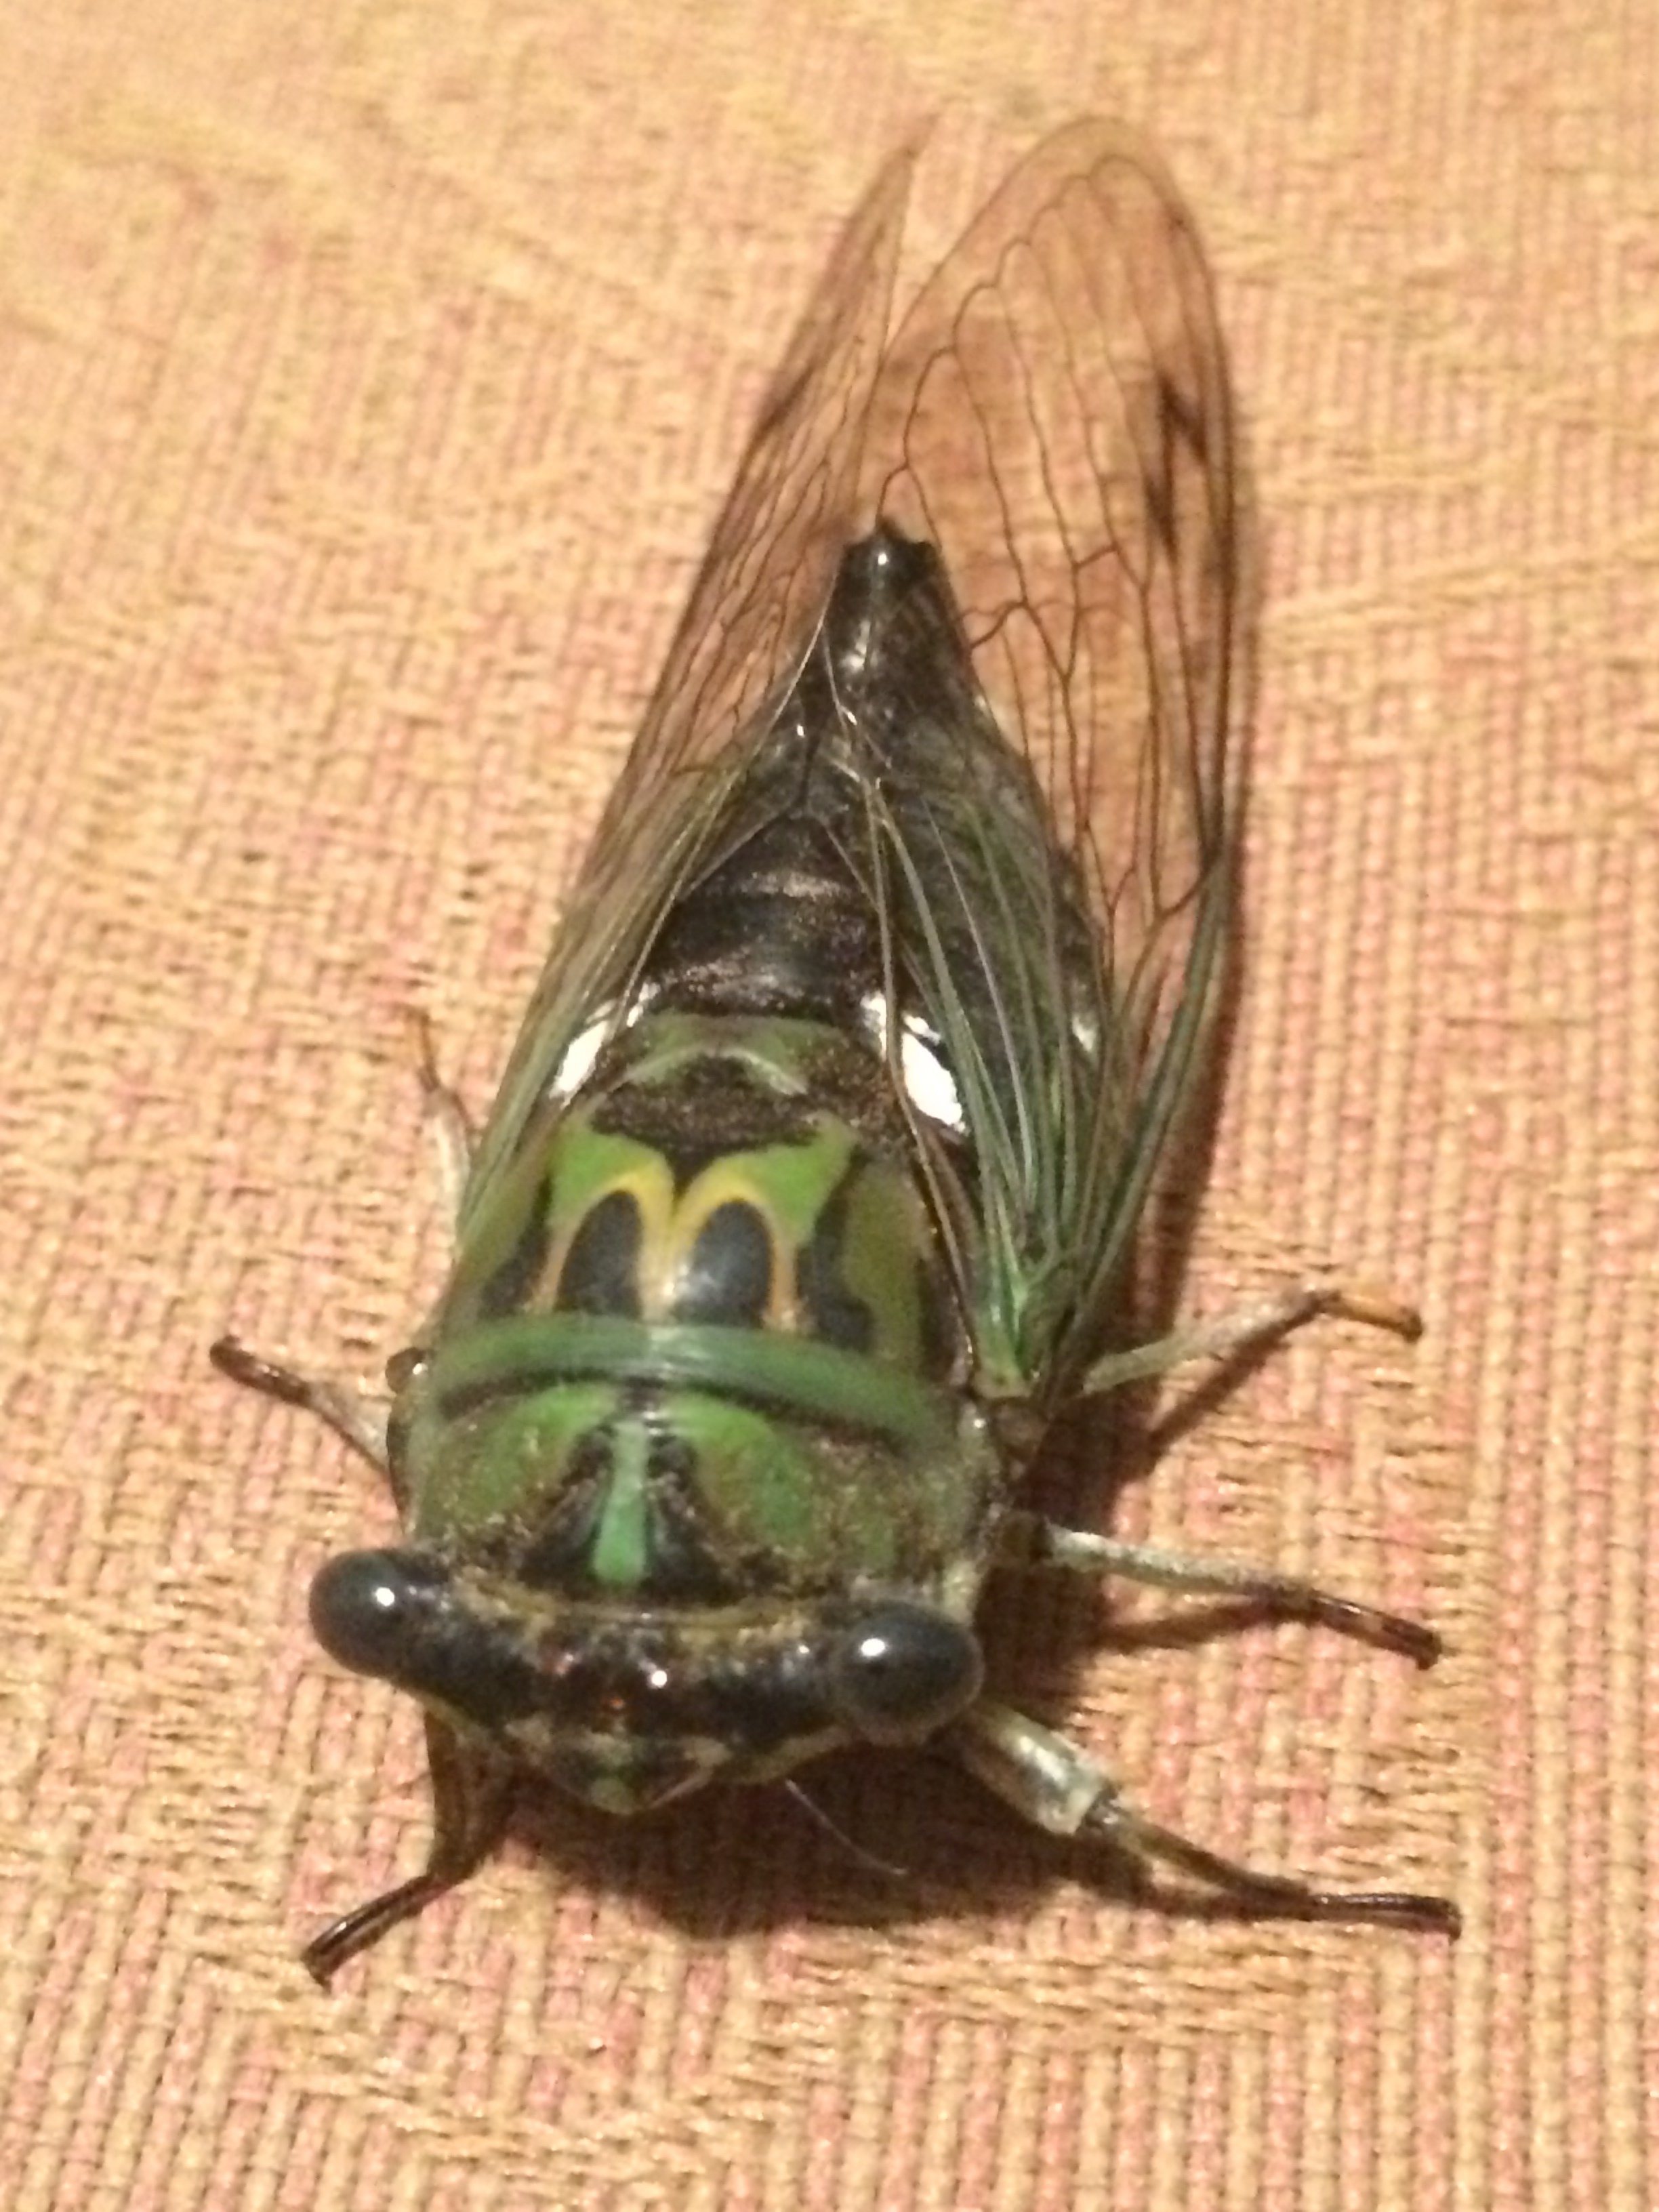 If you've never heard scissors being sharpened by a grinder, they sound like this scissor-grinder cicada.